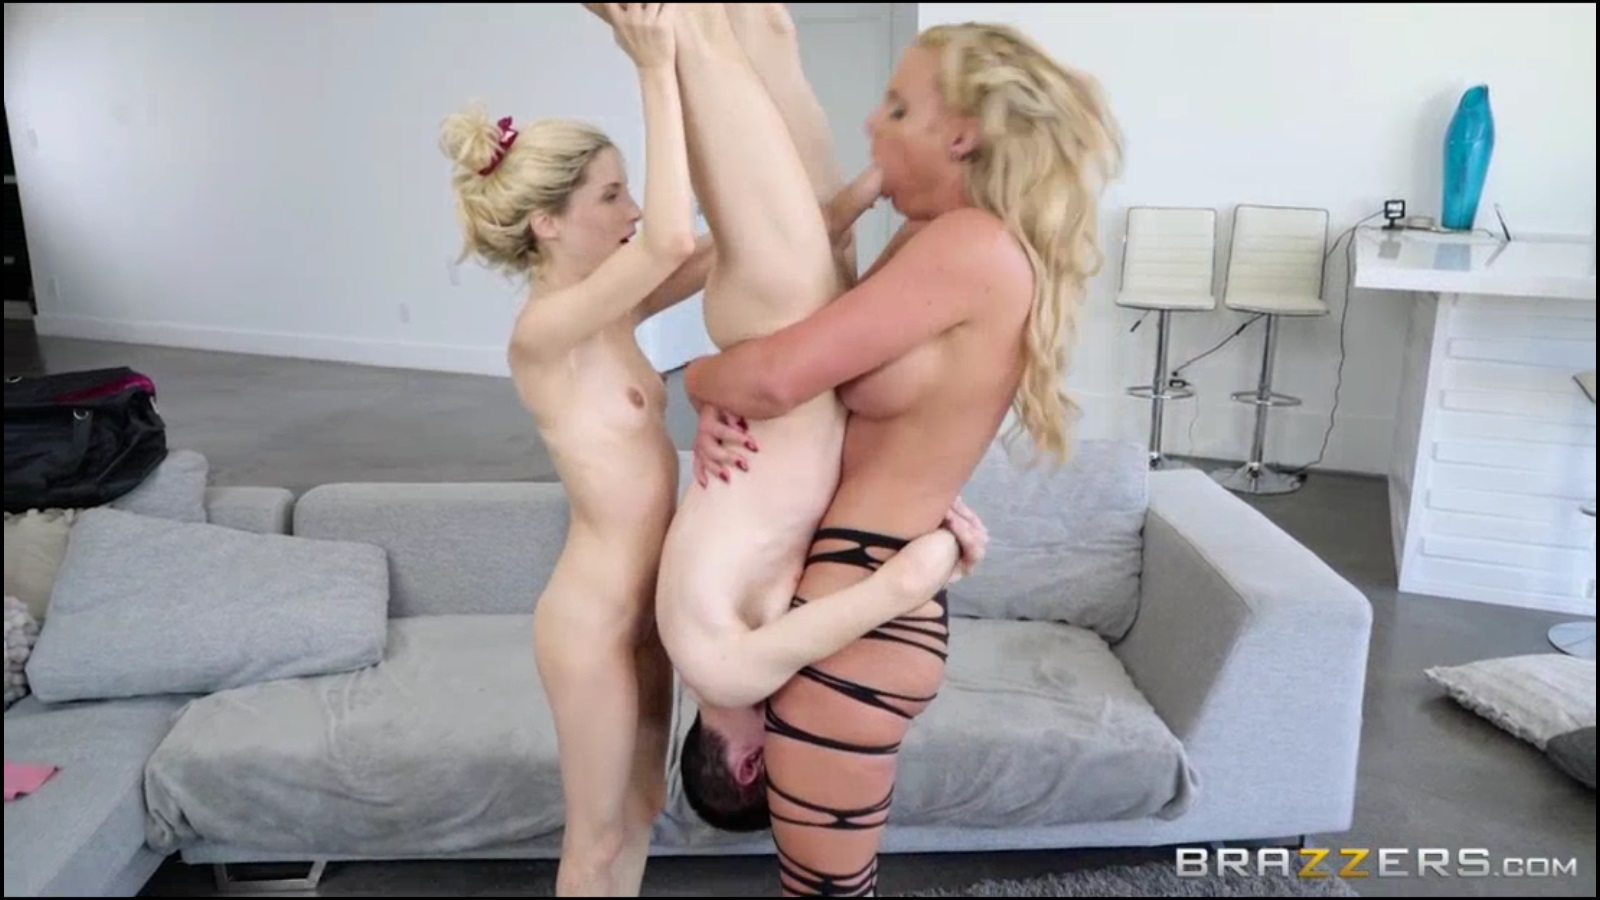 Xxx what do girls think about sex